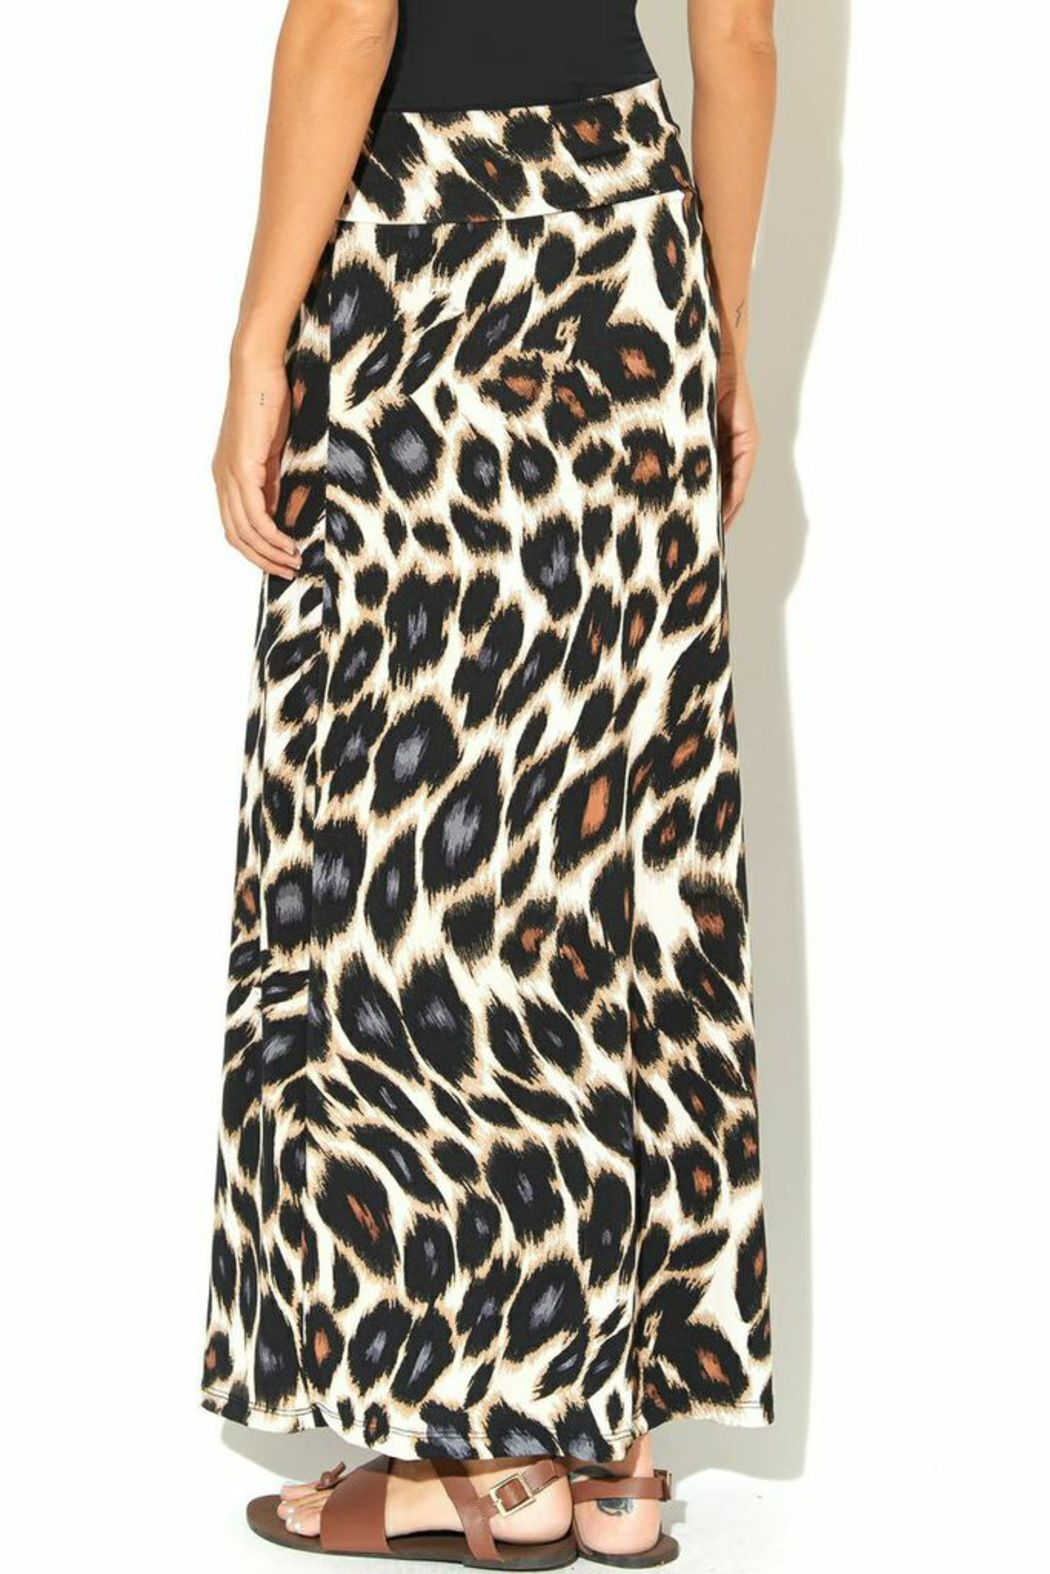 gilli cheetah maxi skirt from kansas city by frankie